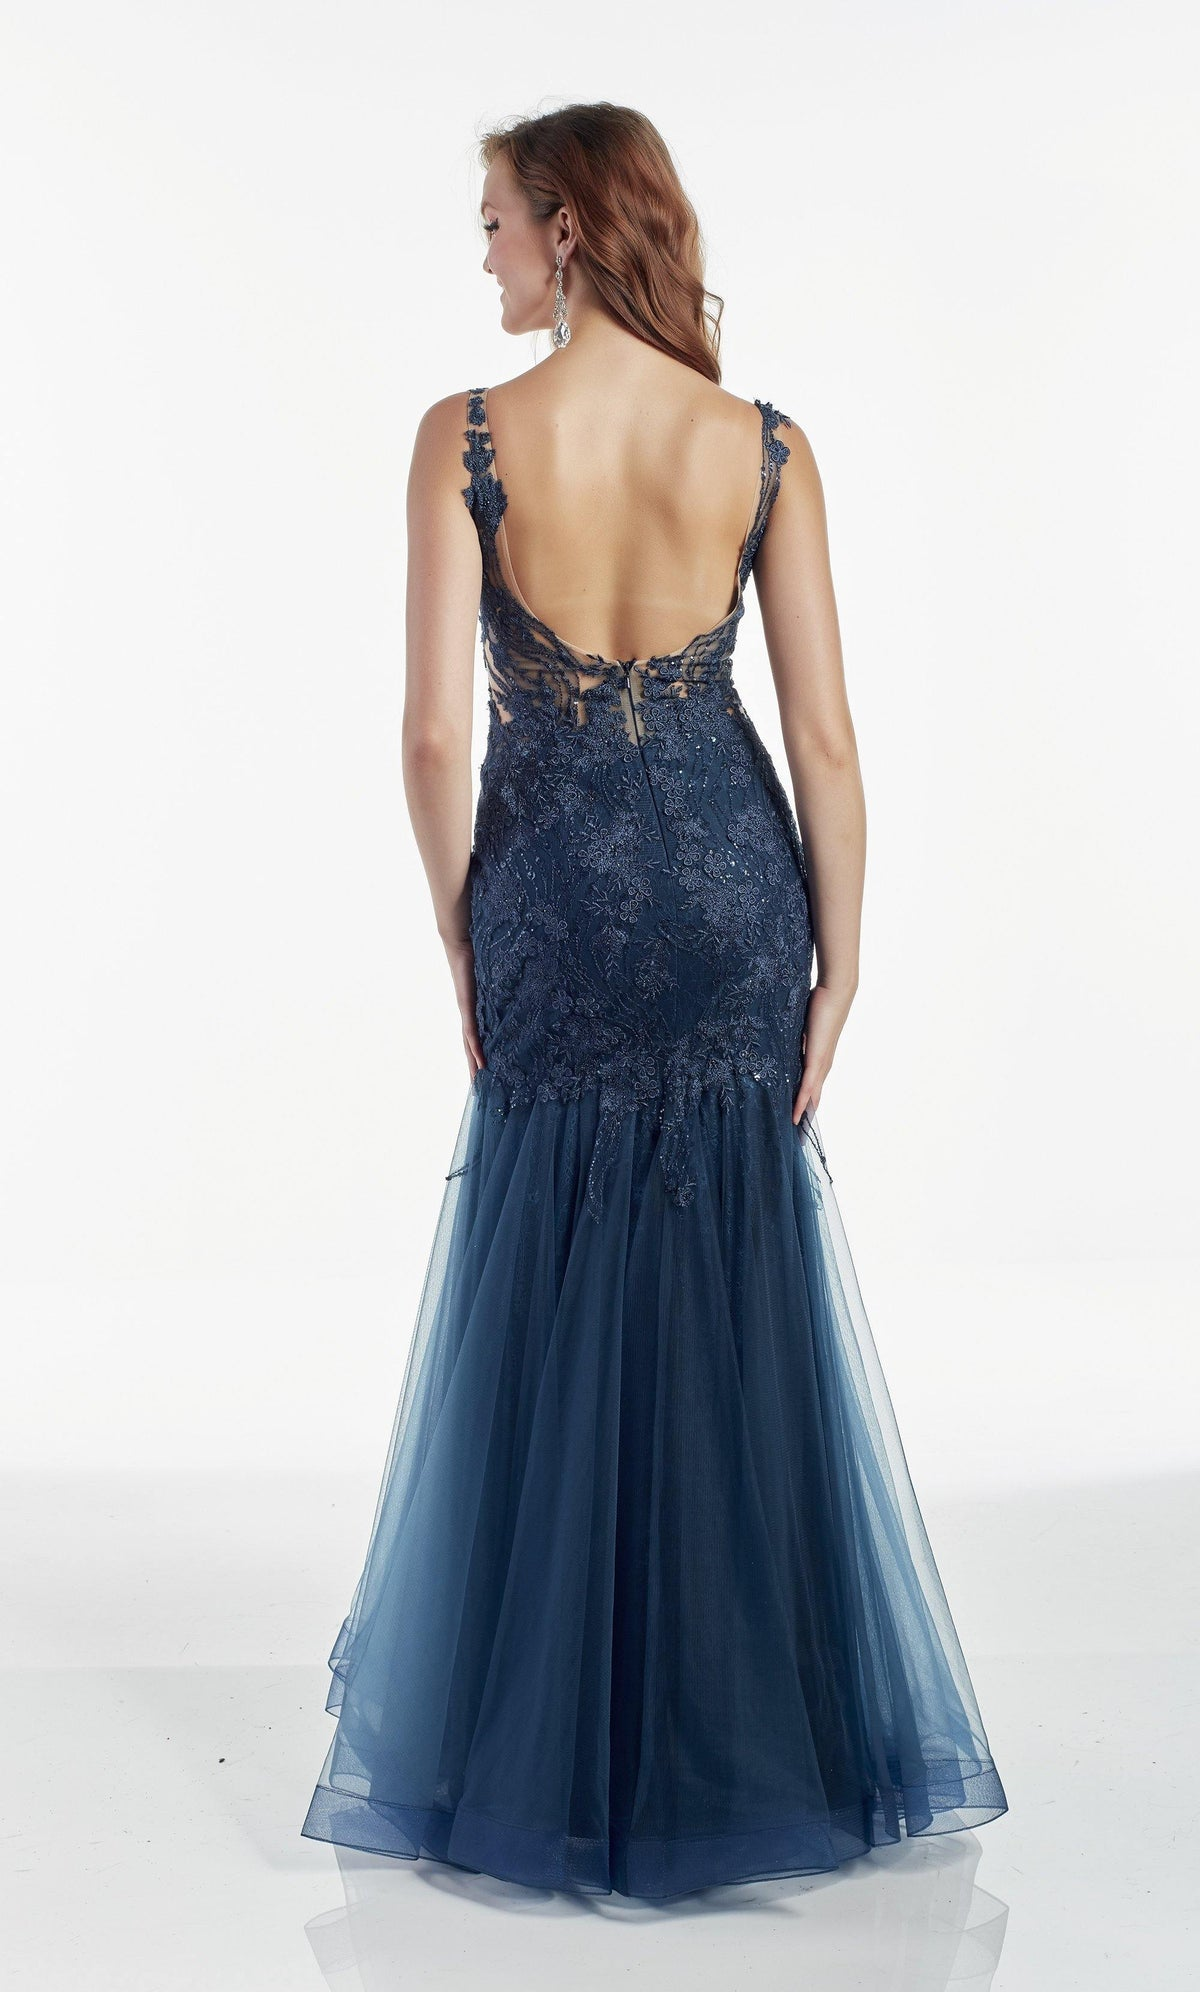 Dark Blue tulle-lace mermaid formal dress with an open back